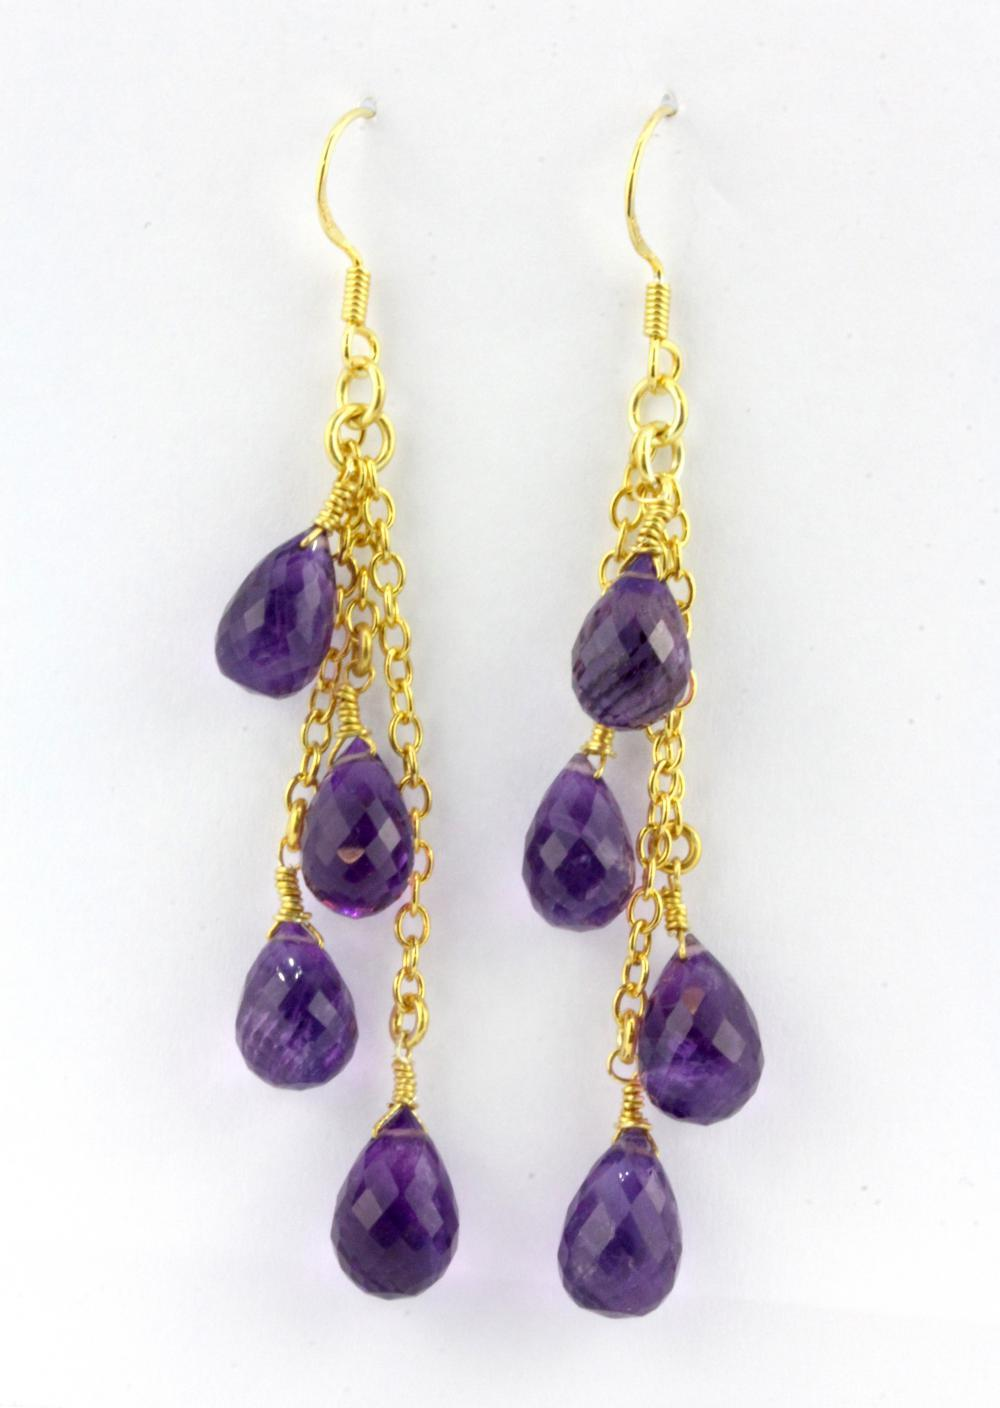 A pair of 925 silver drop earrings set with briolette cut amethysts, L. 6.5cm.